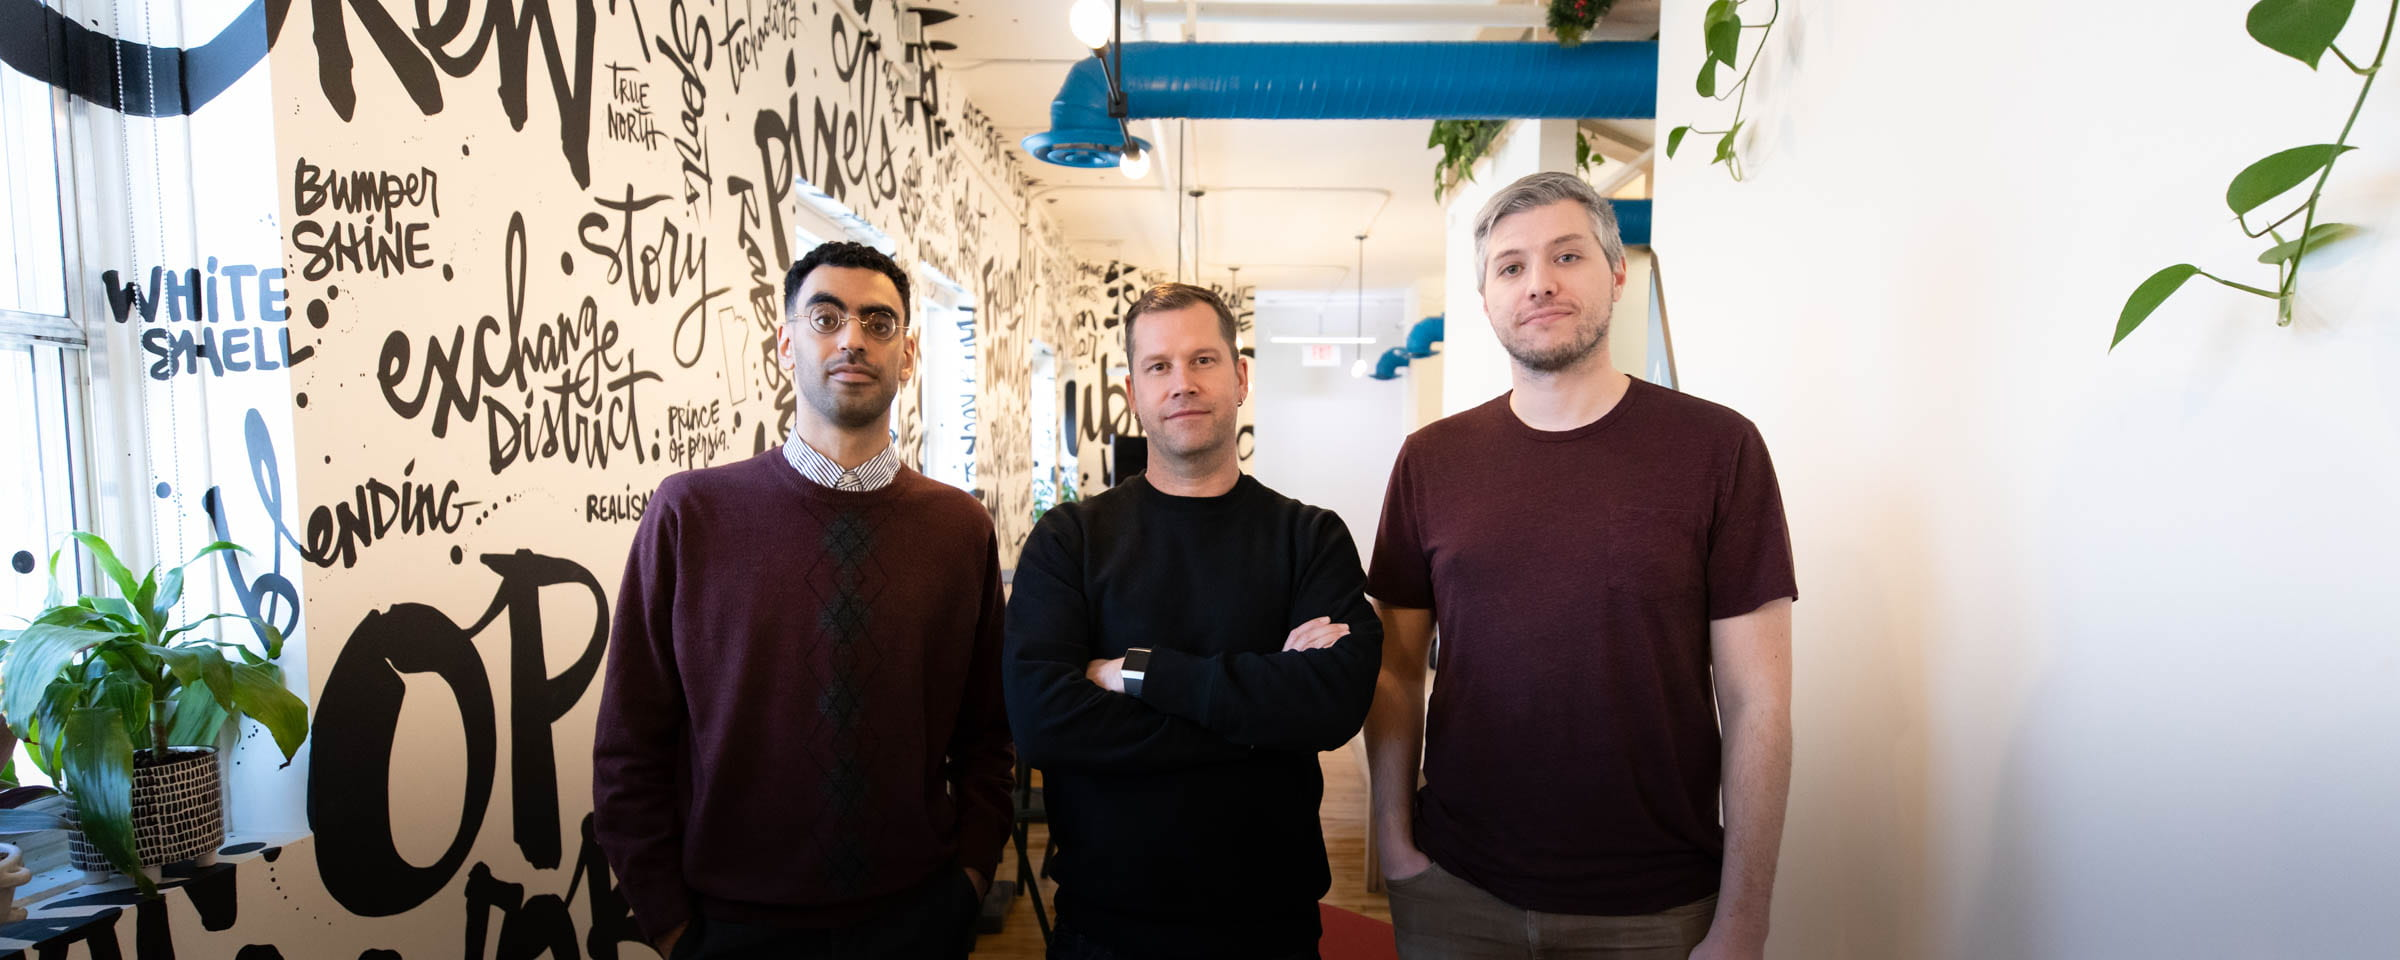 Ubisoft Winnipeg employees Ibrahim Shahin, Kent Wilson and Spencer Marr